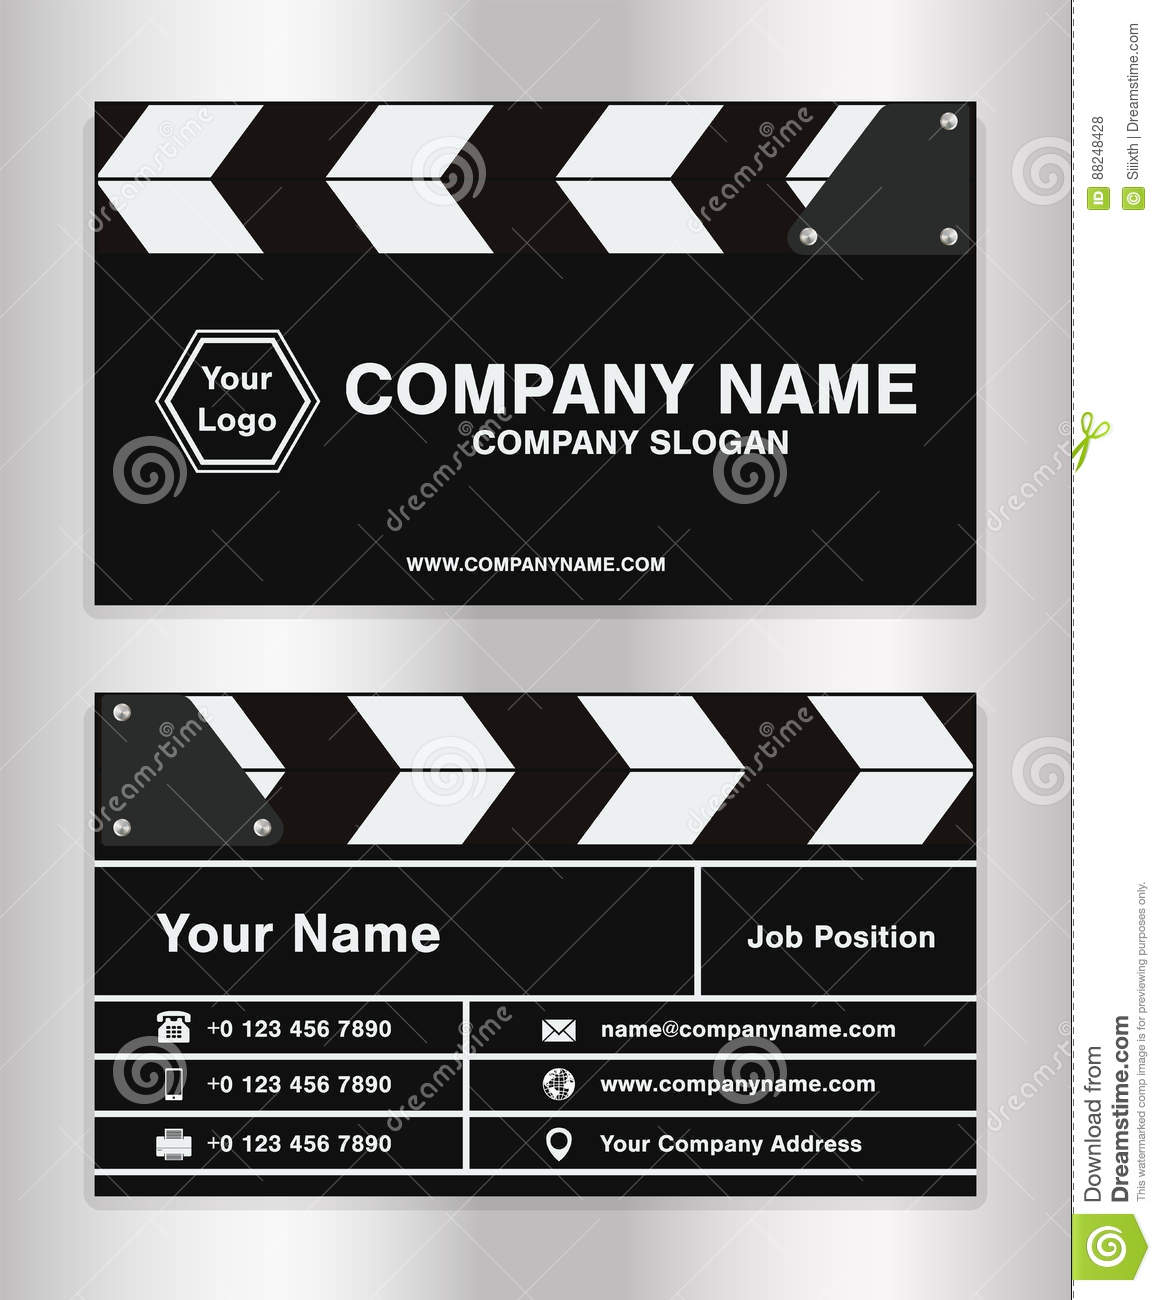 Clapper Board Template Free